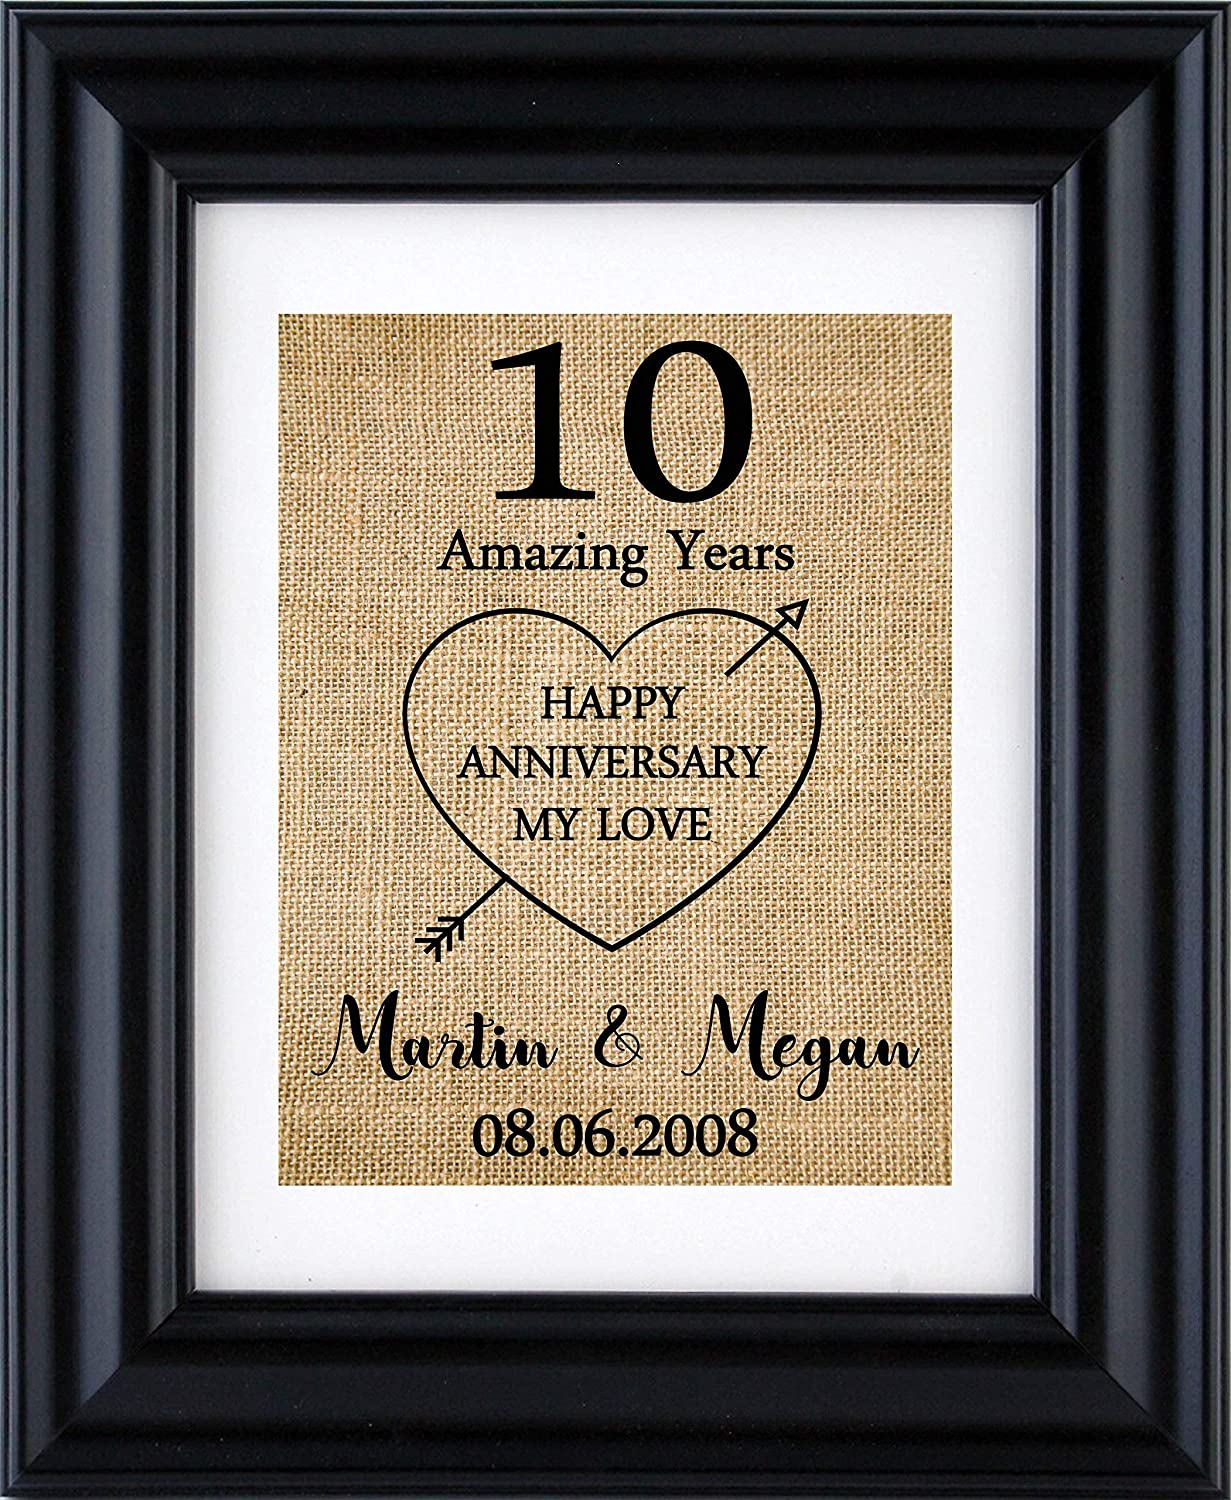 Amazon Com Personalised 10th Anniversary Gift Anniversary Print For 1st 5th 10th 20th 15th 25th 30th Wedding Anniversary Anniversary Gift For Him Gift For Her Anniversary Burlap Print Frame Not Included Handmade